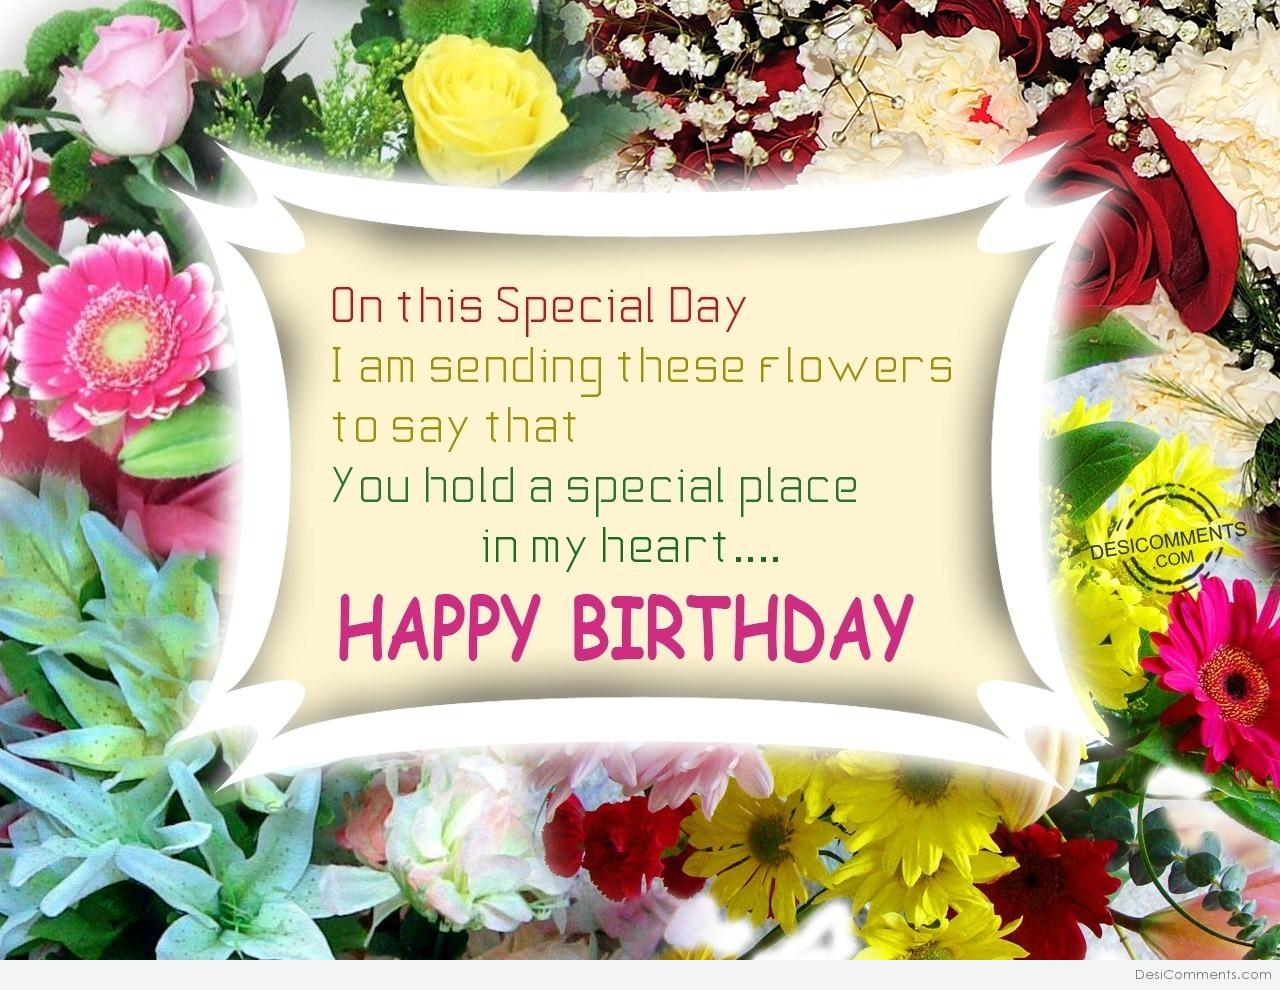 Accept My Flowers On Your Birthday Desicomments